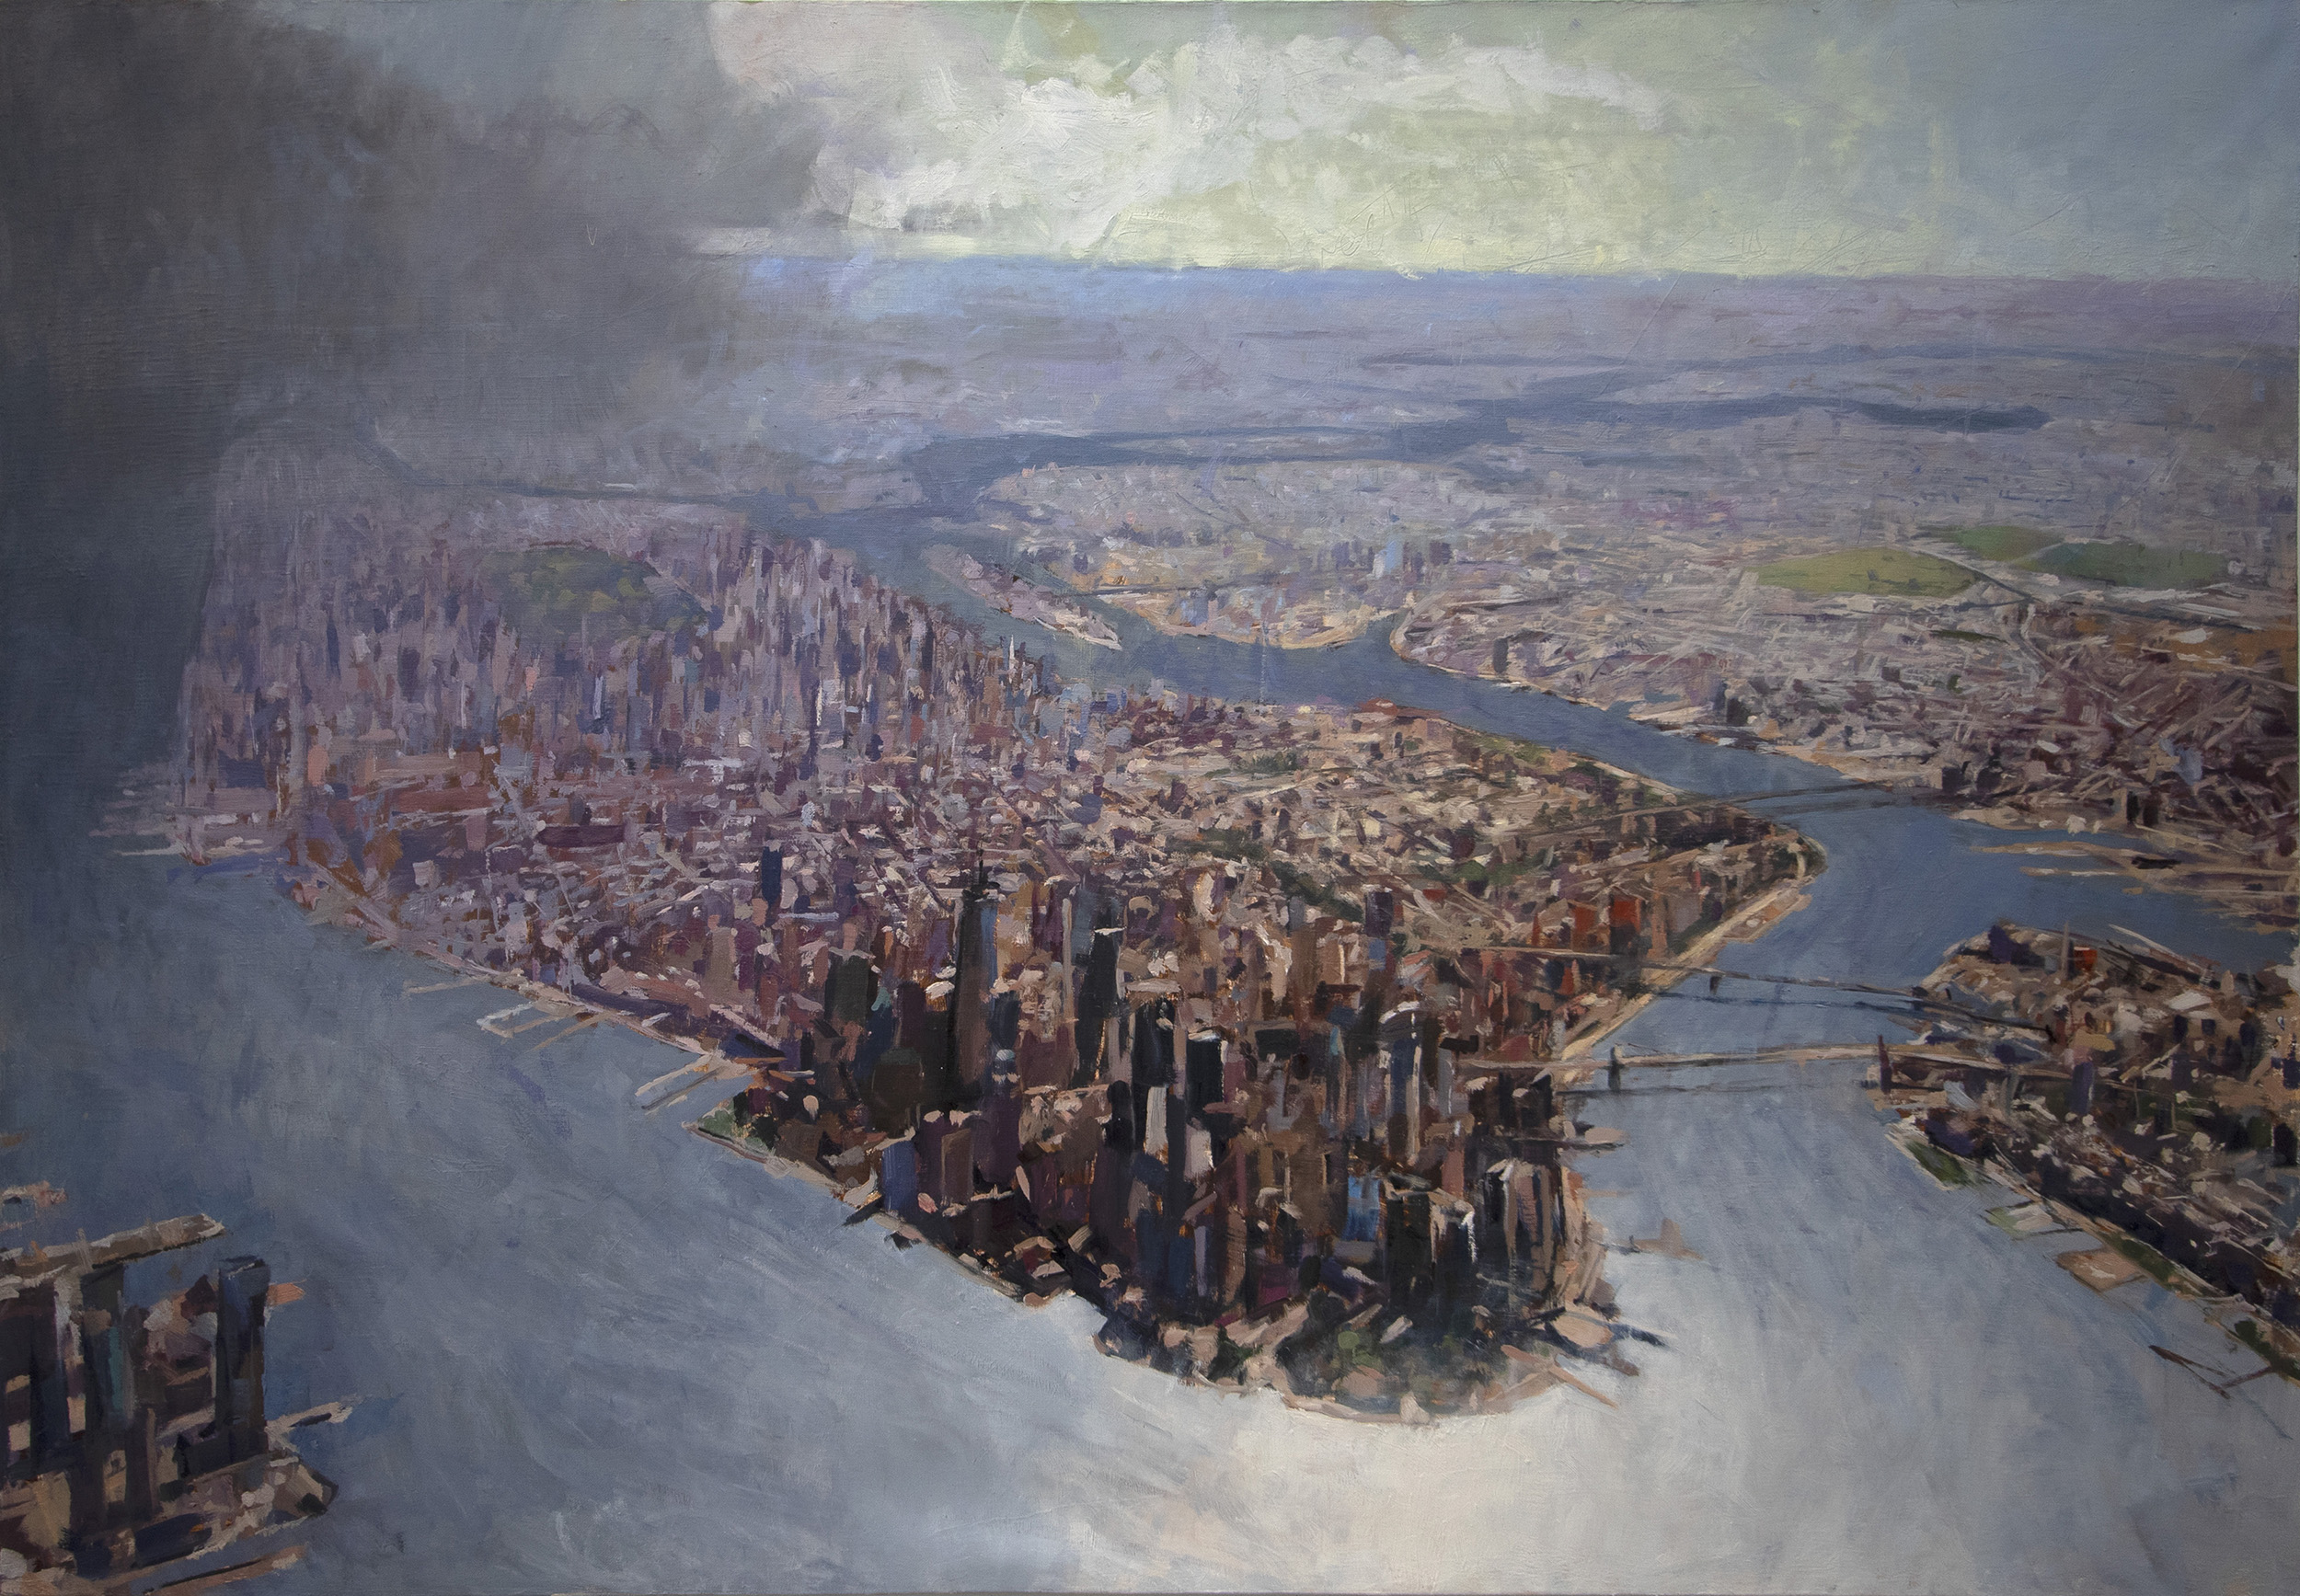 Painting image, Reflected in a City, a cityscape of Manhattan Island.